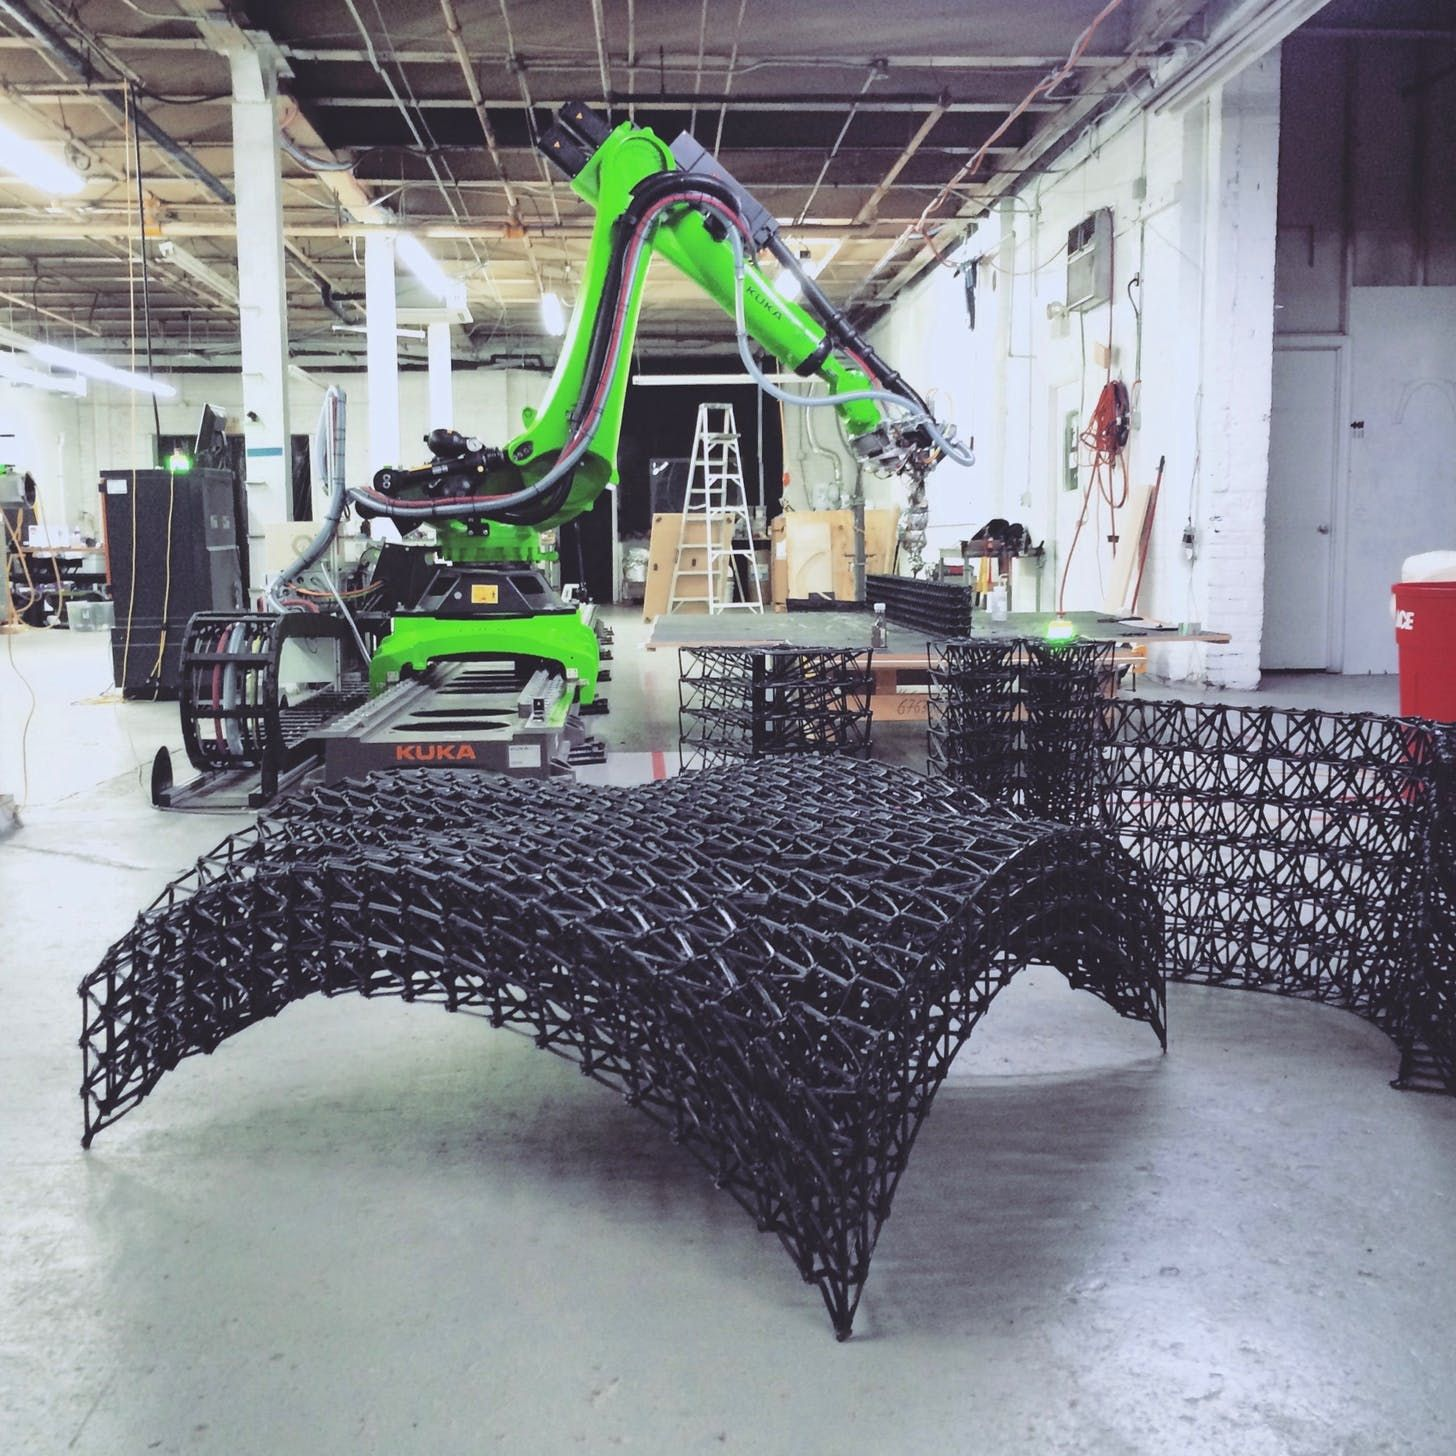 3d Printing A Better Skeleton For Concrete Structures With Platt Boyd Of Branch Technology 3d Printed House 3d Printing Business 3d Printing Service